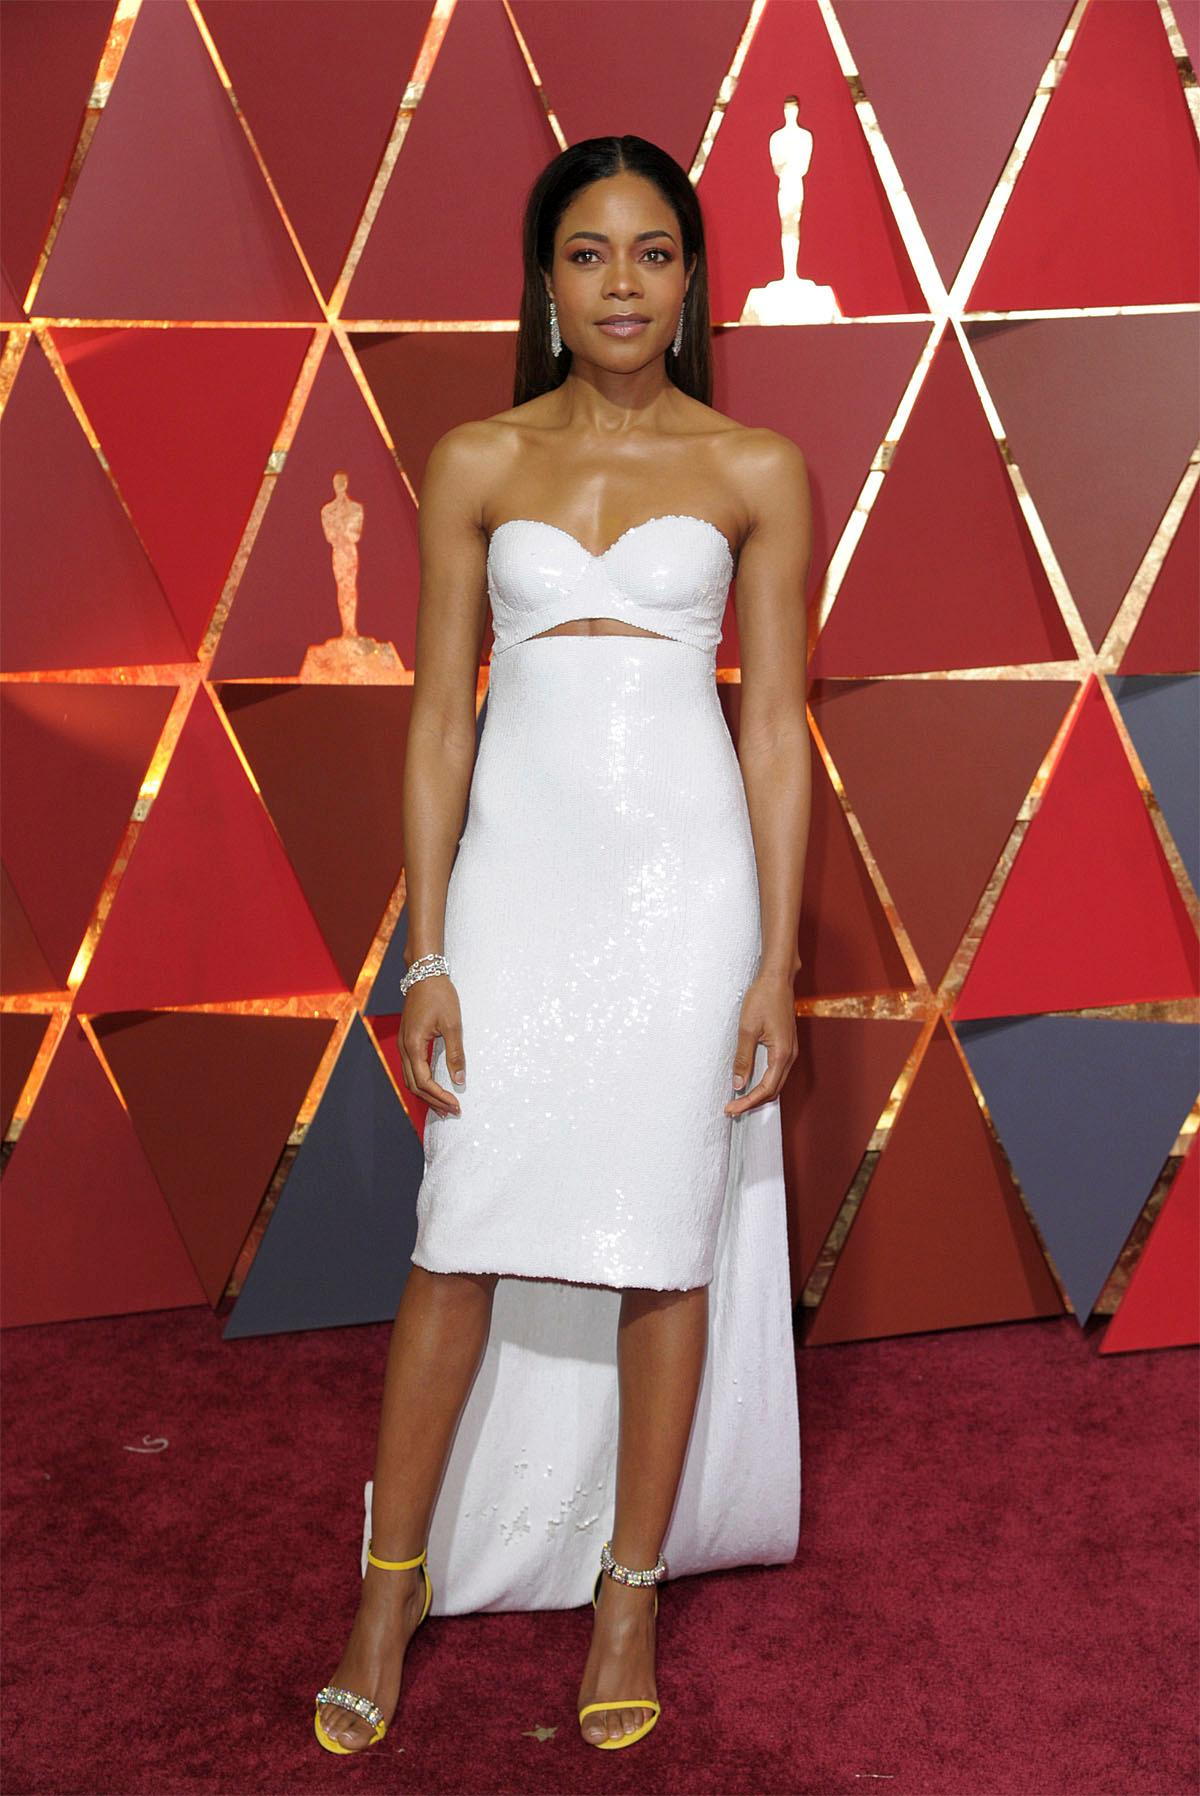 Naomie Harris arrives at the Oscars on Sunday, Feb. 26, 2017, at the Dolby Theatre in Los Angeles. (Photo by Richard Shotwell/Invision/AP)